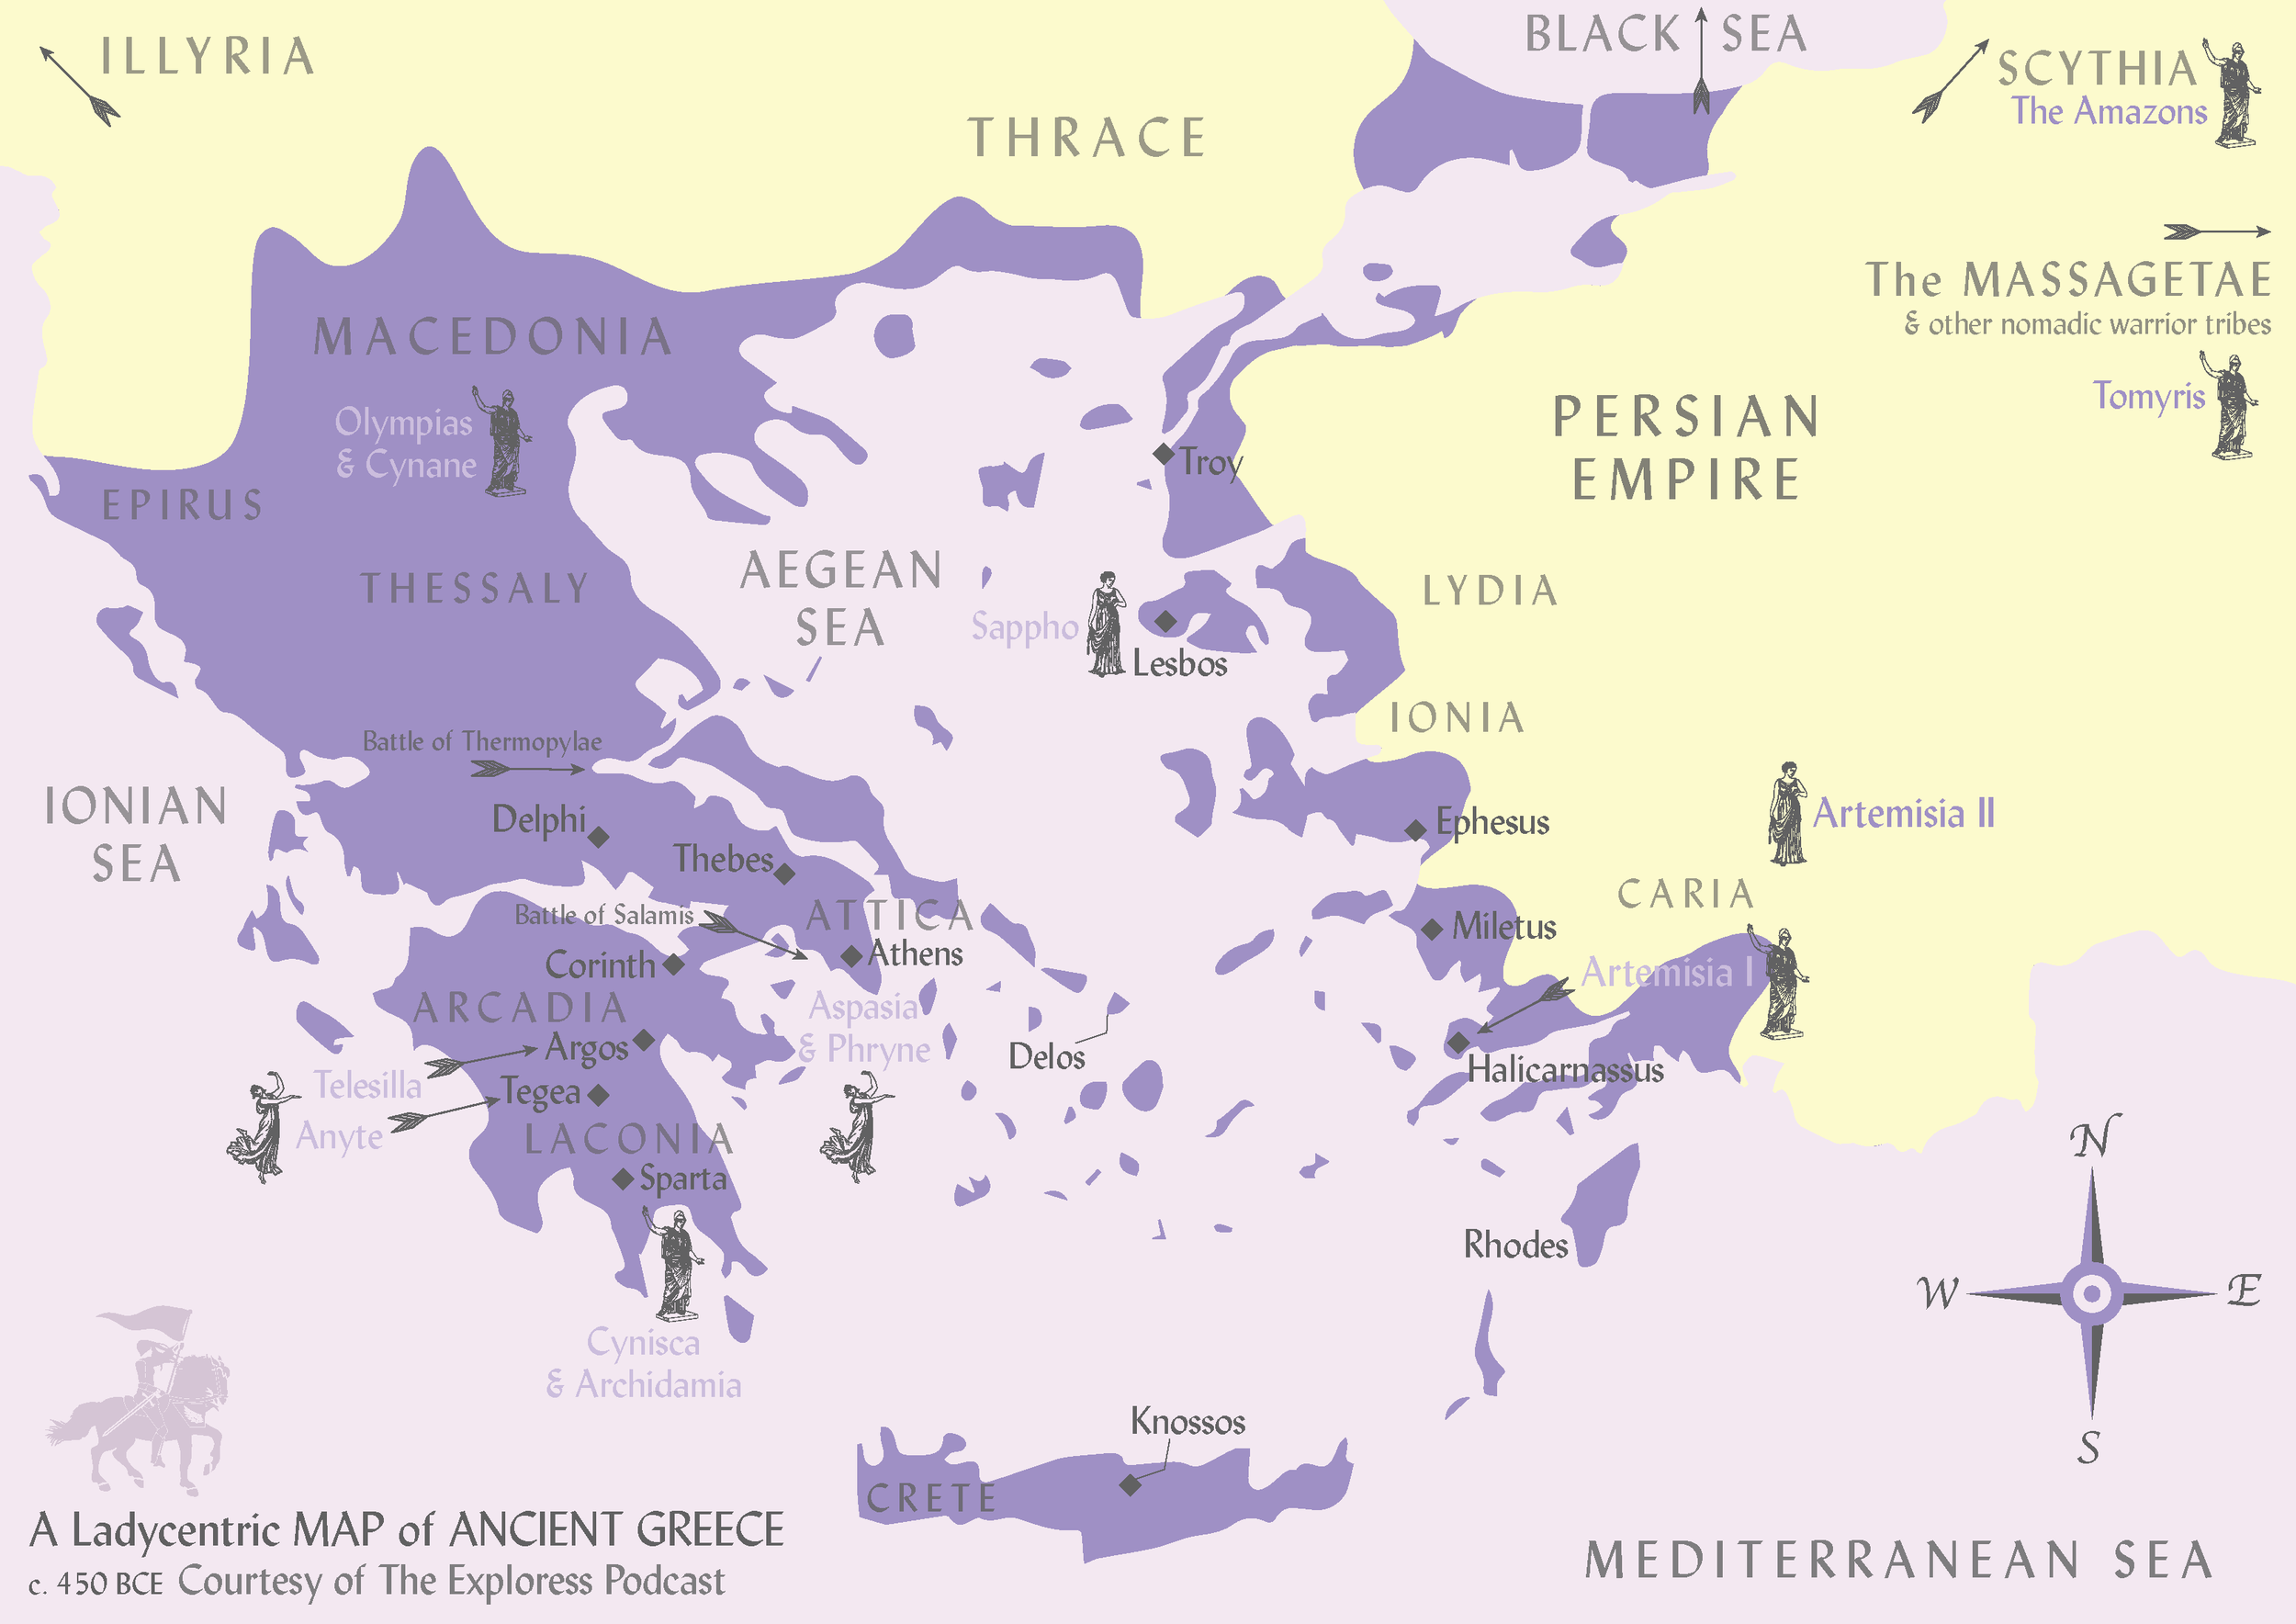 This map gives you at least some idea where the so-called Amazons lived, though their territory was very wide-ranging and stretched very, VERY far outside the average Greek's world. If you like this map, check out the Exploress Etsy shop: you'll find the map for sale, and it makes a great conversation piece hanging up in your office or a nice gift for the ancient lady-loving history enthusiast in your life.